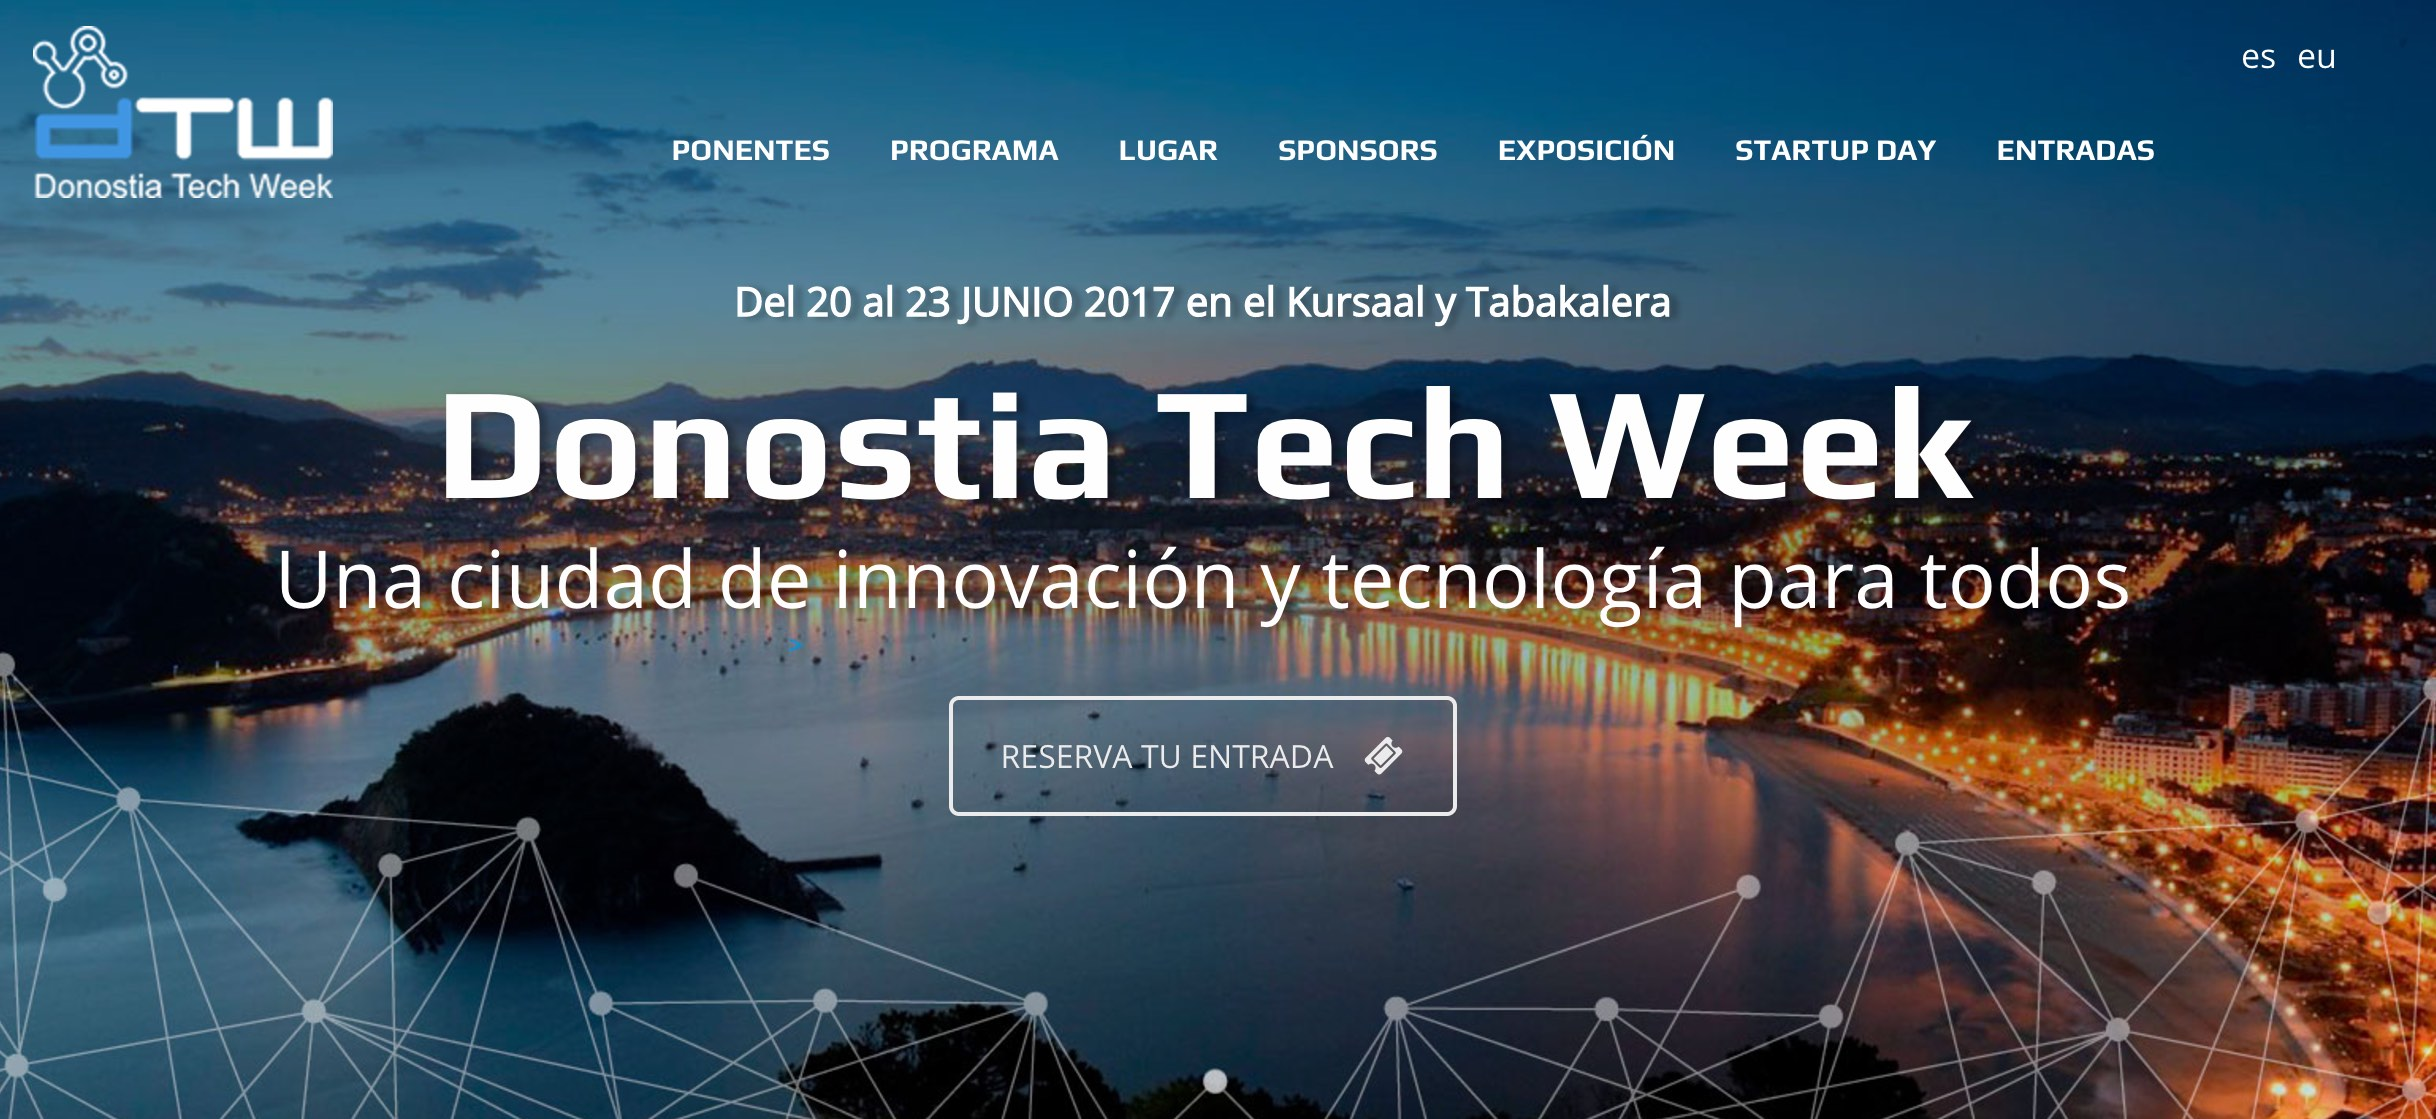 Drone by Drone at the Donostia Tech Week